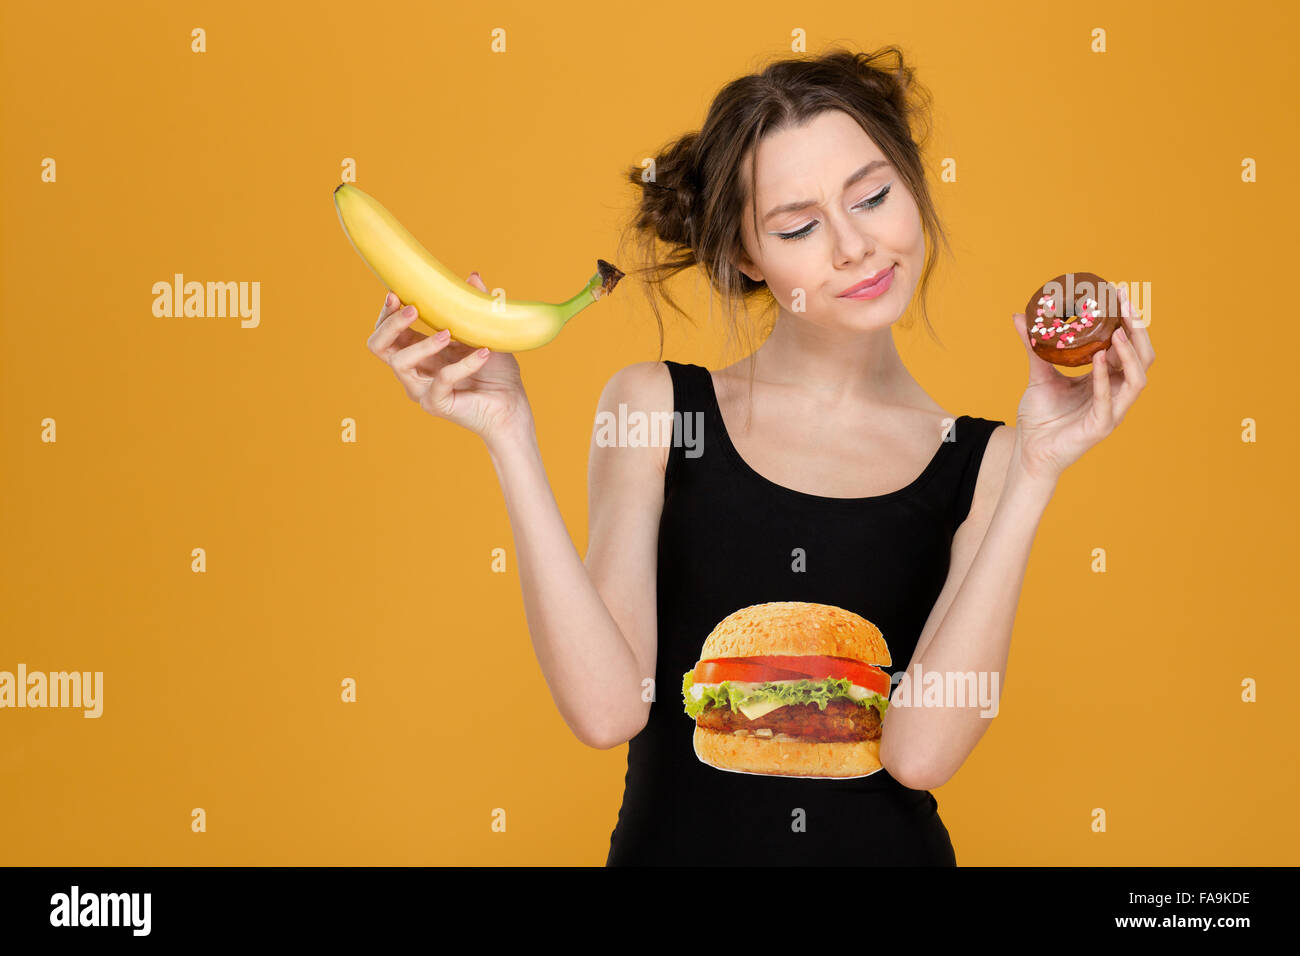 Confused thoughtful cute young woman with banana and donut choosing between healthy and unhealthy food over yellow - Stock Photo